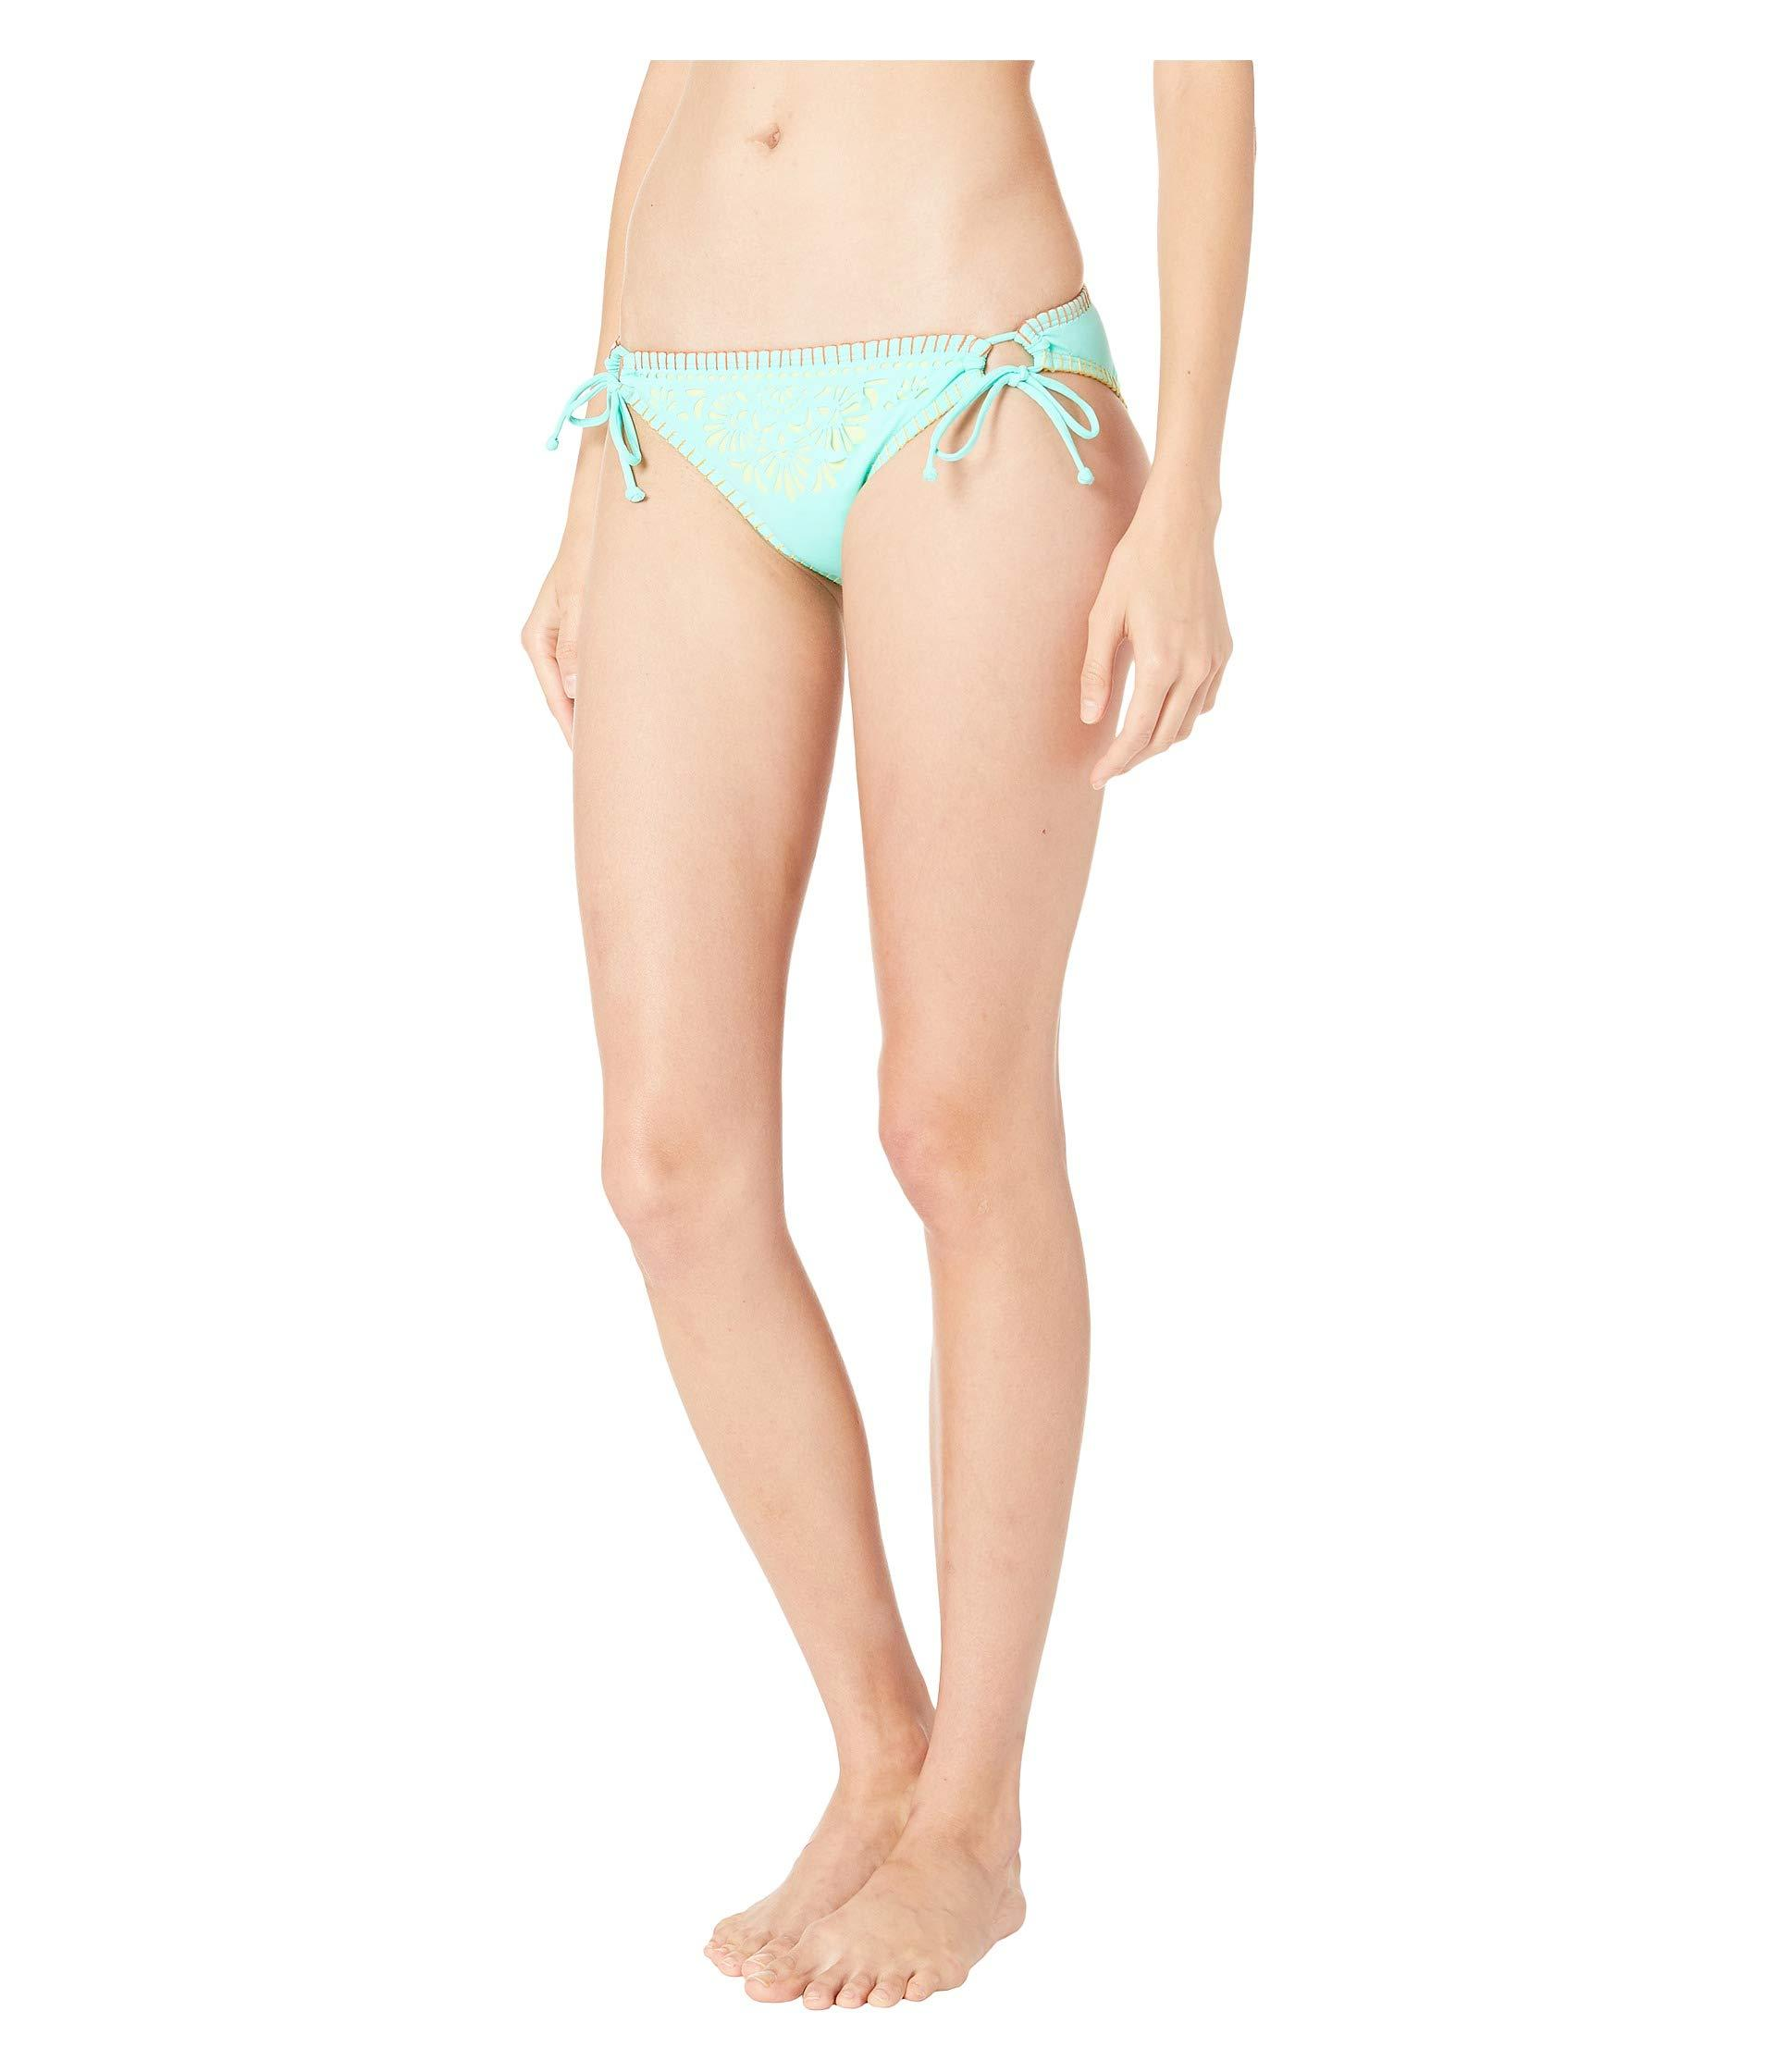 0c9358cc21 Lyst - Hobie Papel Picado Adjustable Hipster Bottoms (turquoise) Women's  Swimwear in Blue